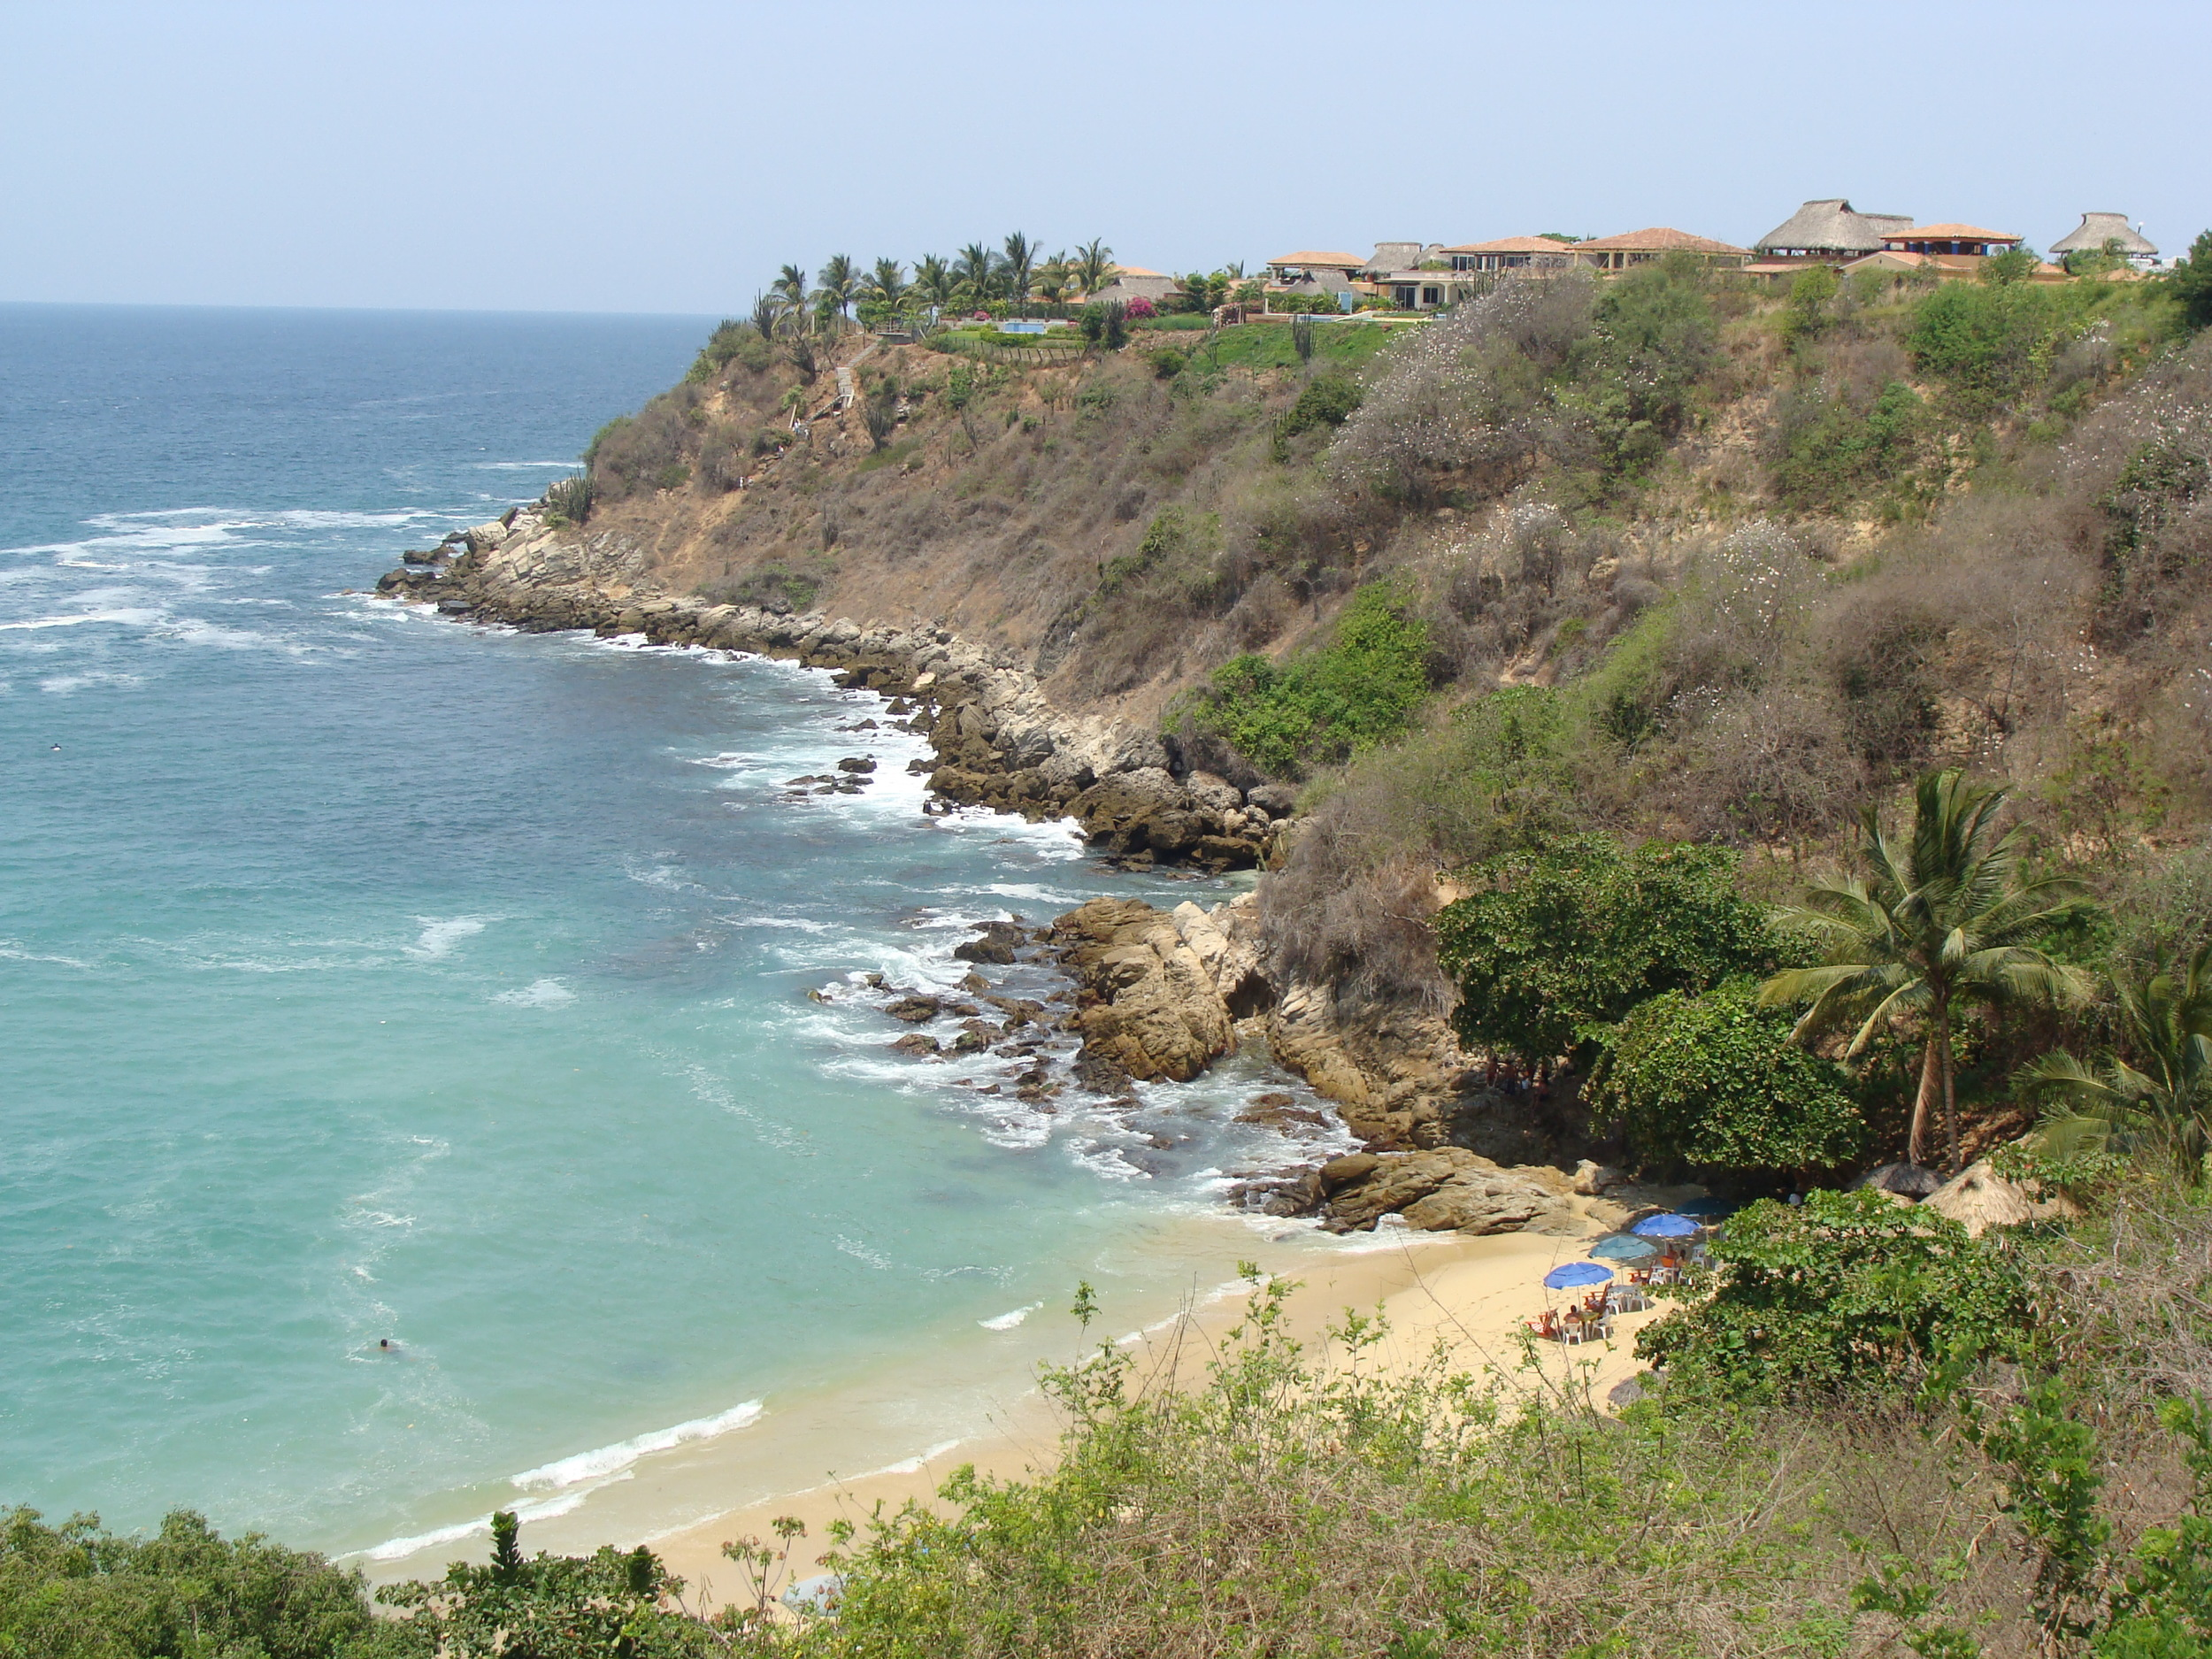 The Oaxacan coast line